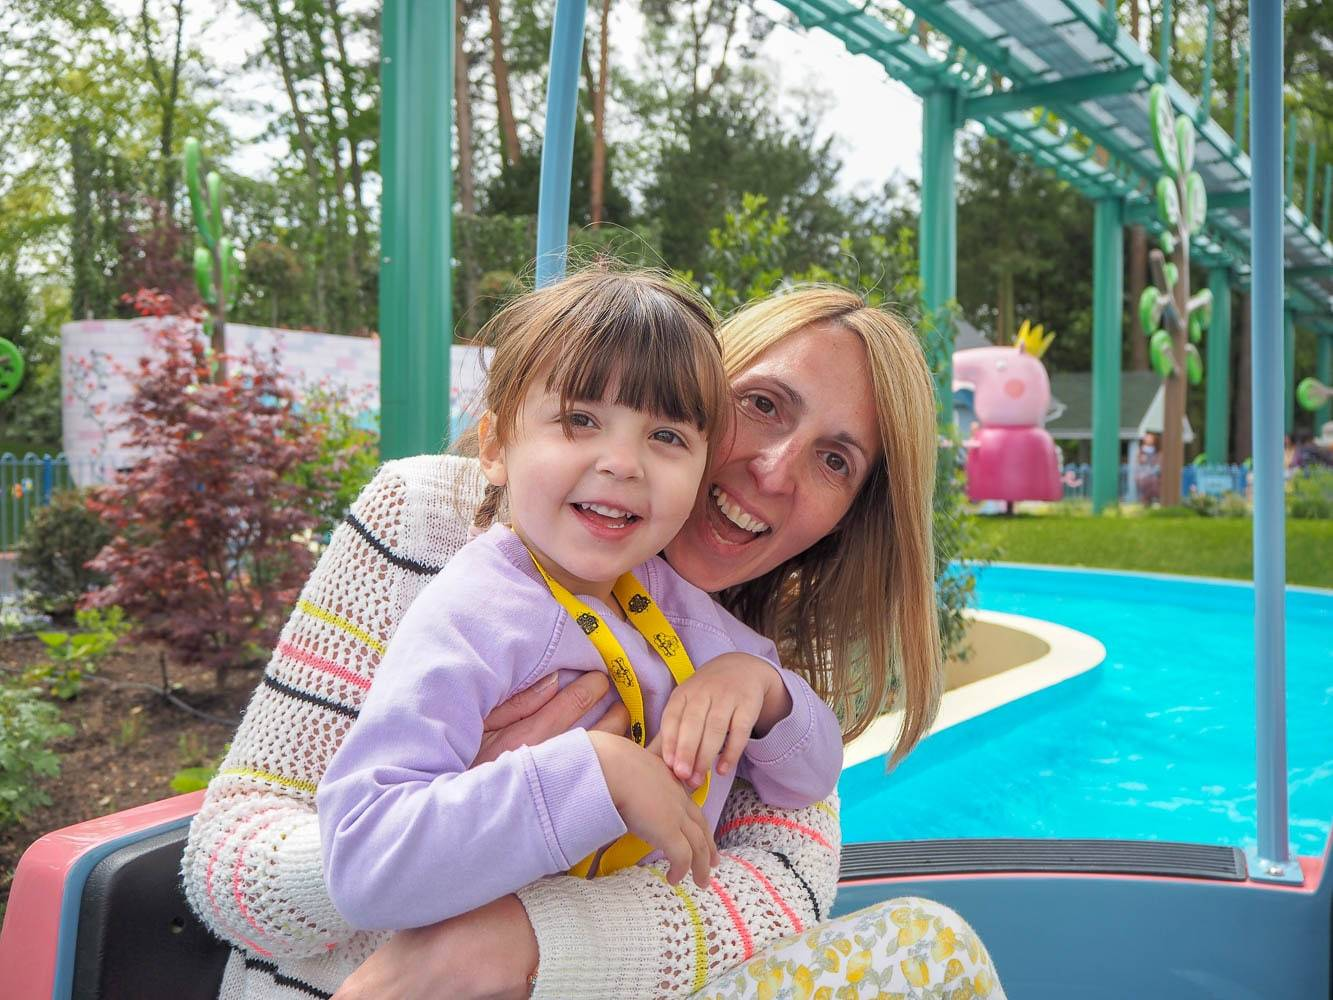 Introducing The New Rides At Peppa Pig World, Paultons Park…